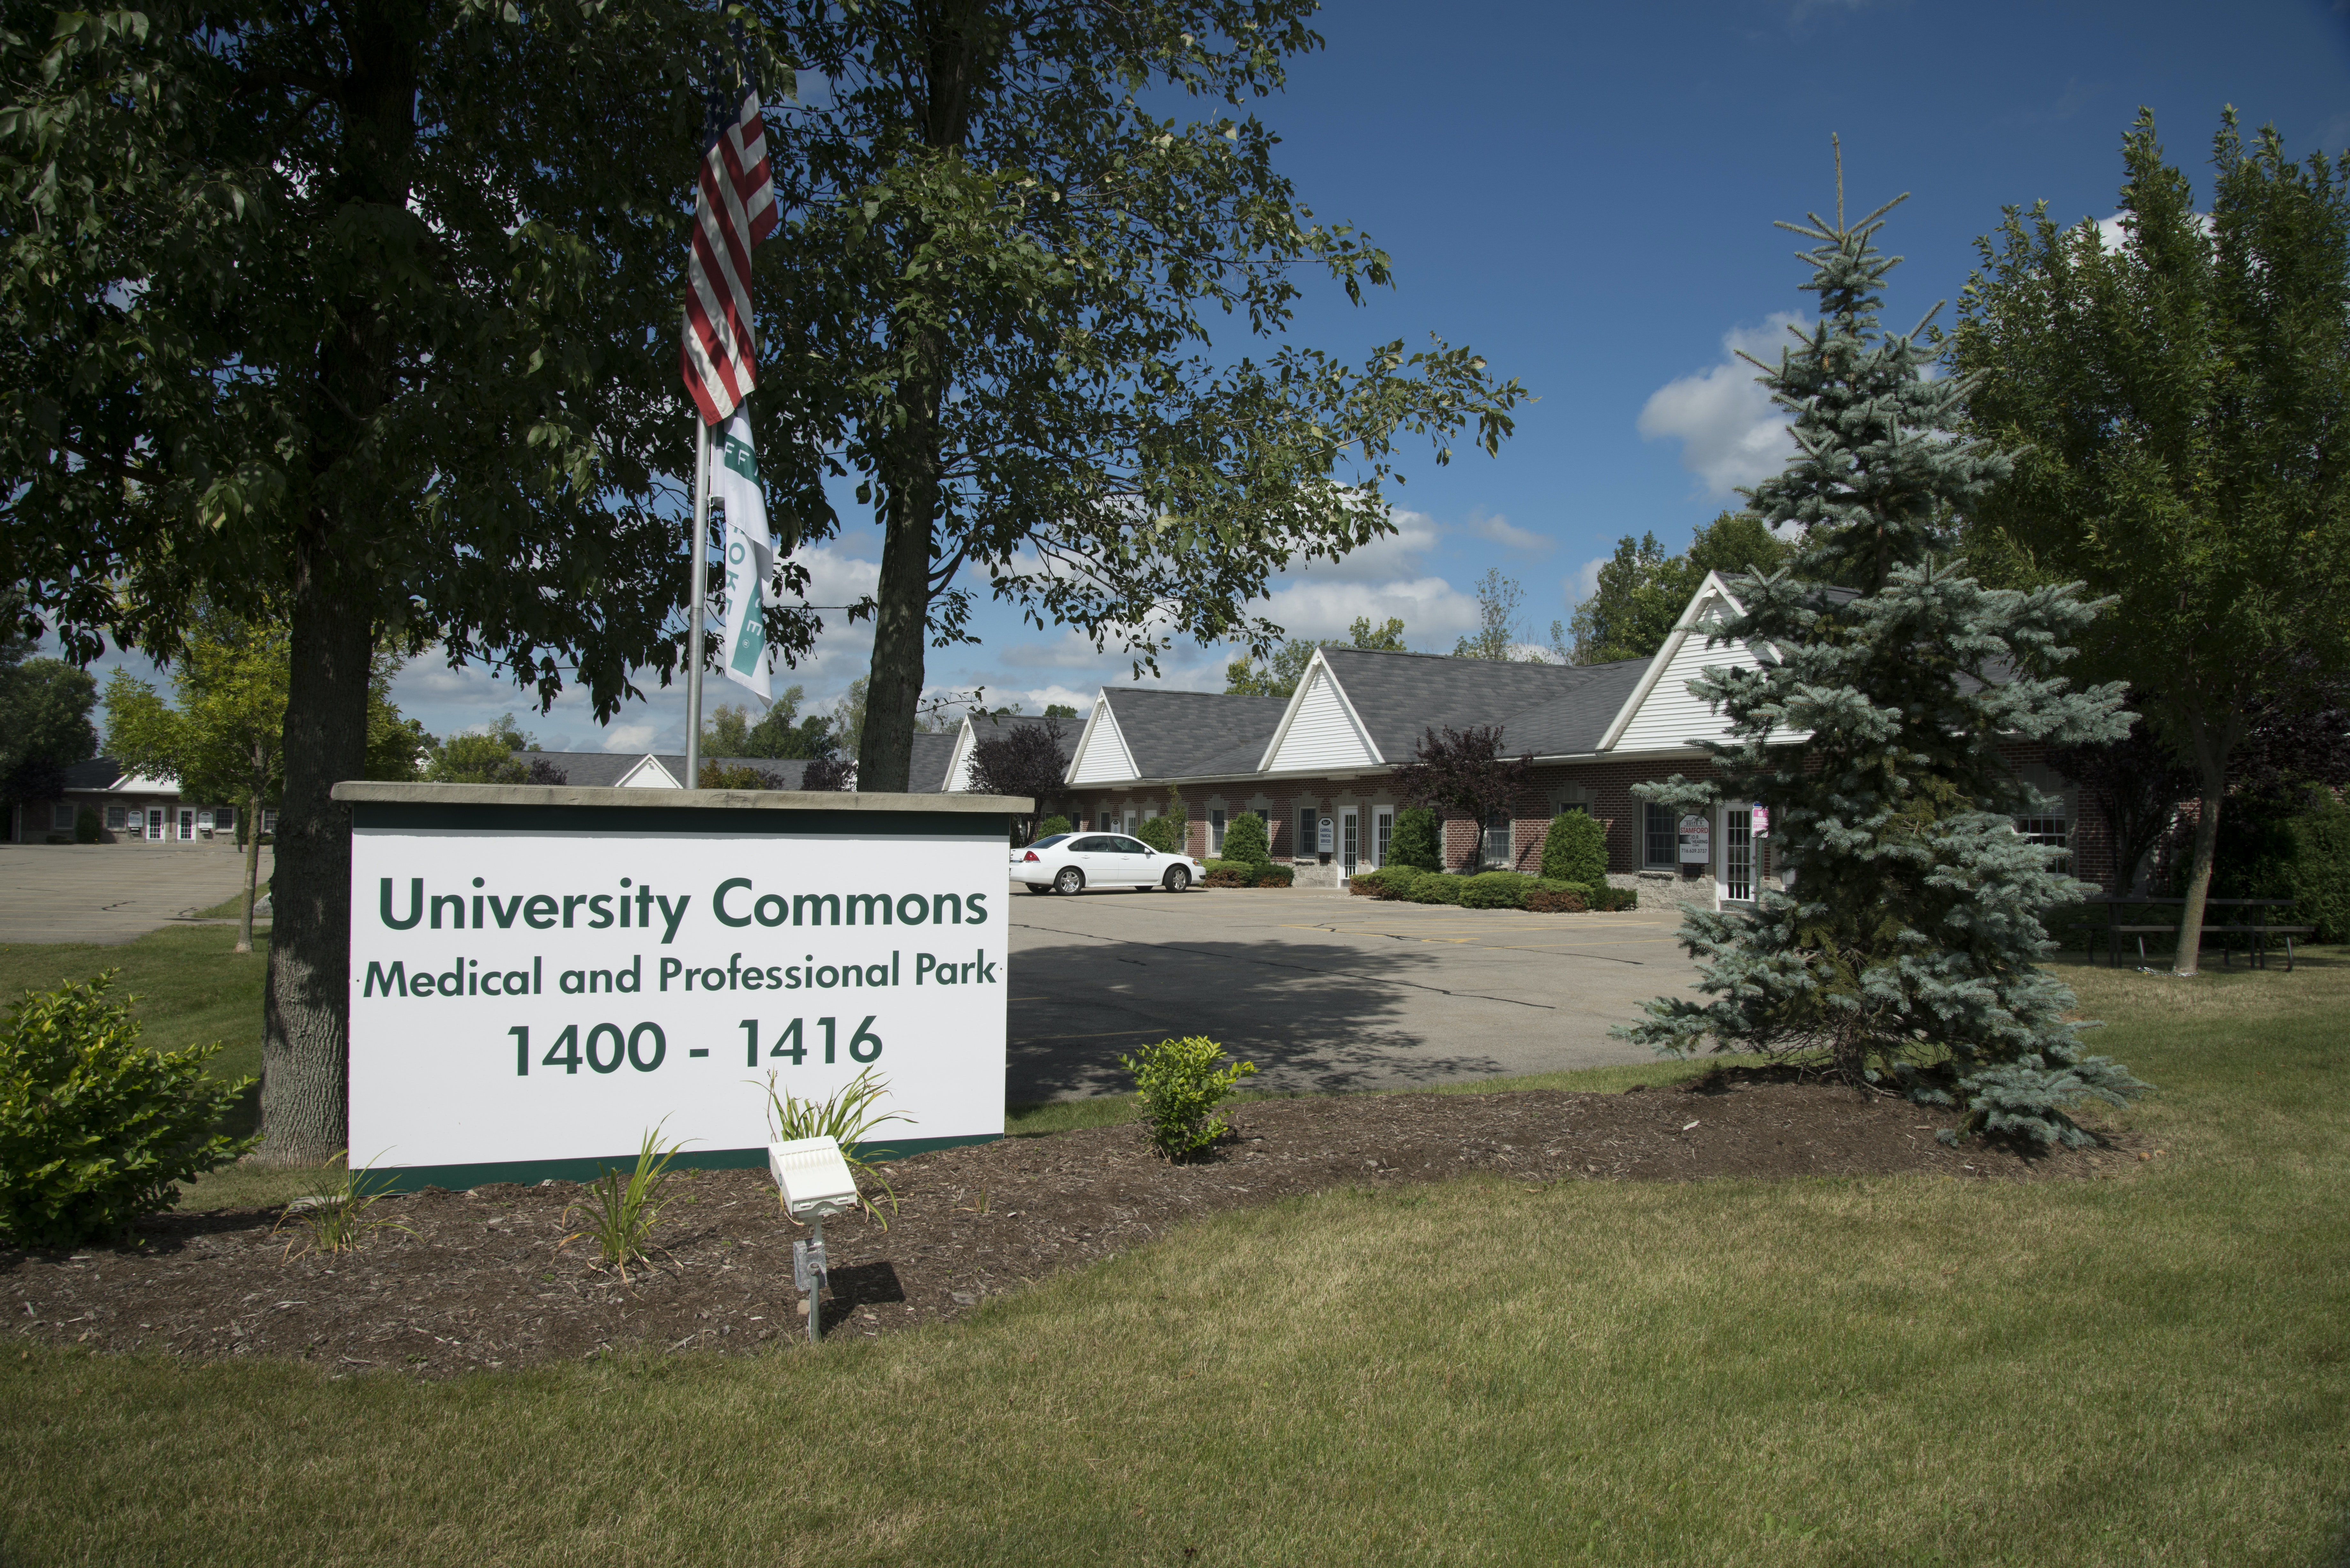 University Commons Medical and Professional Park in Amherst, NY